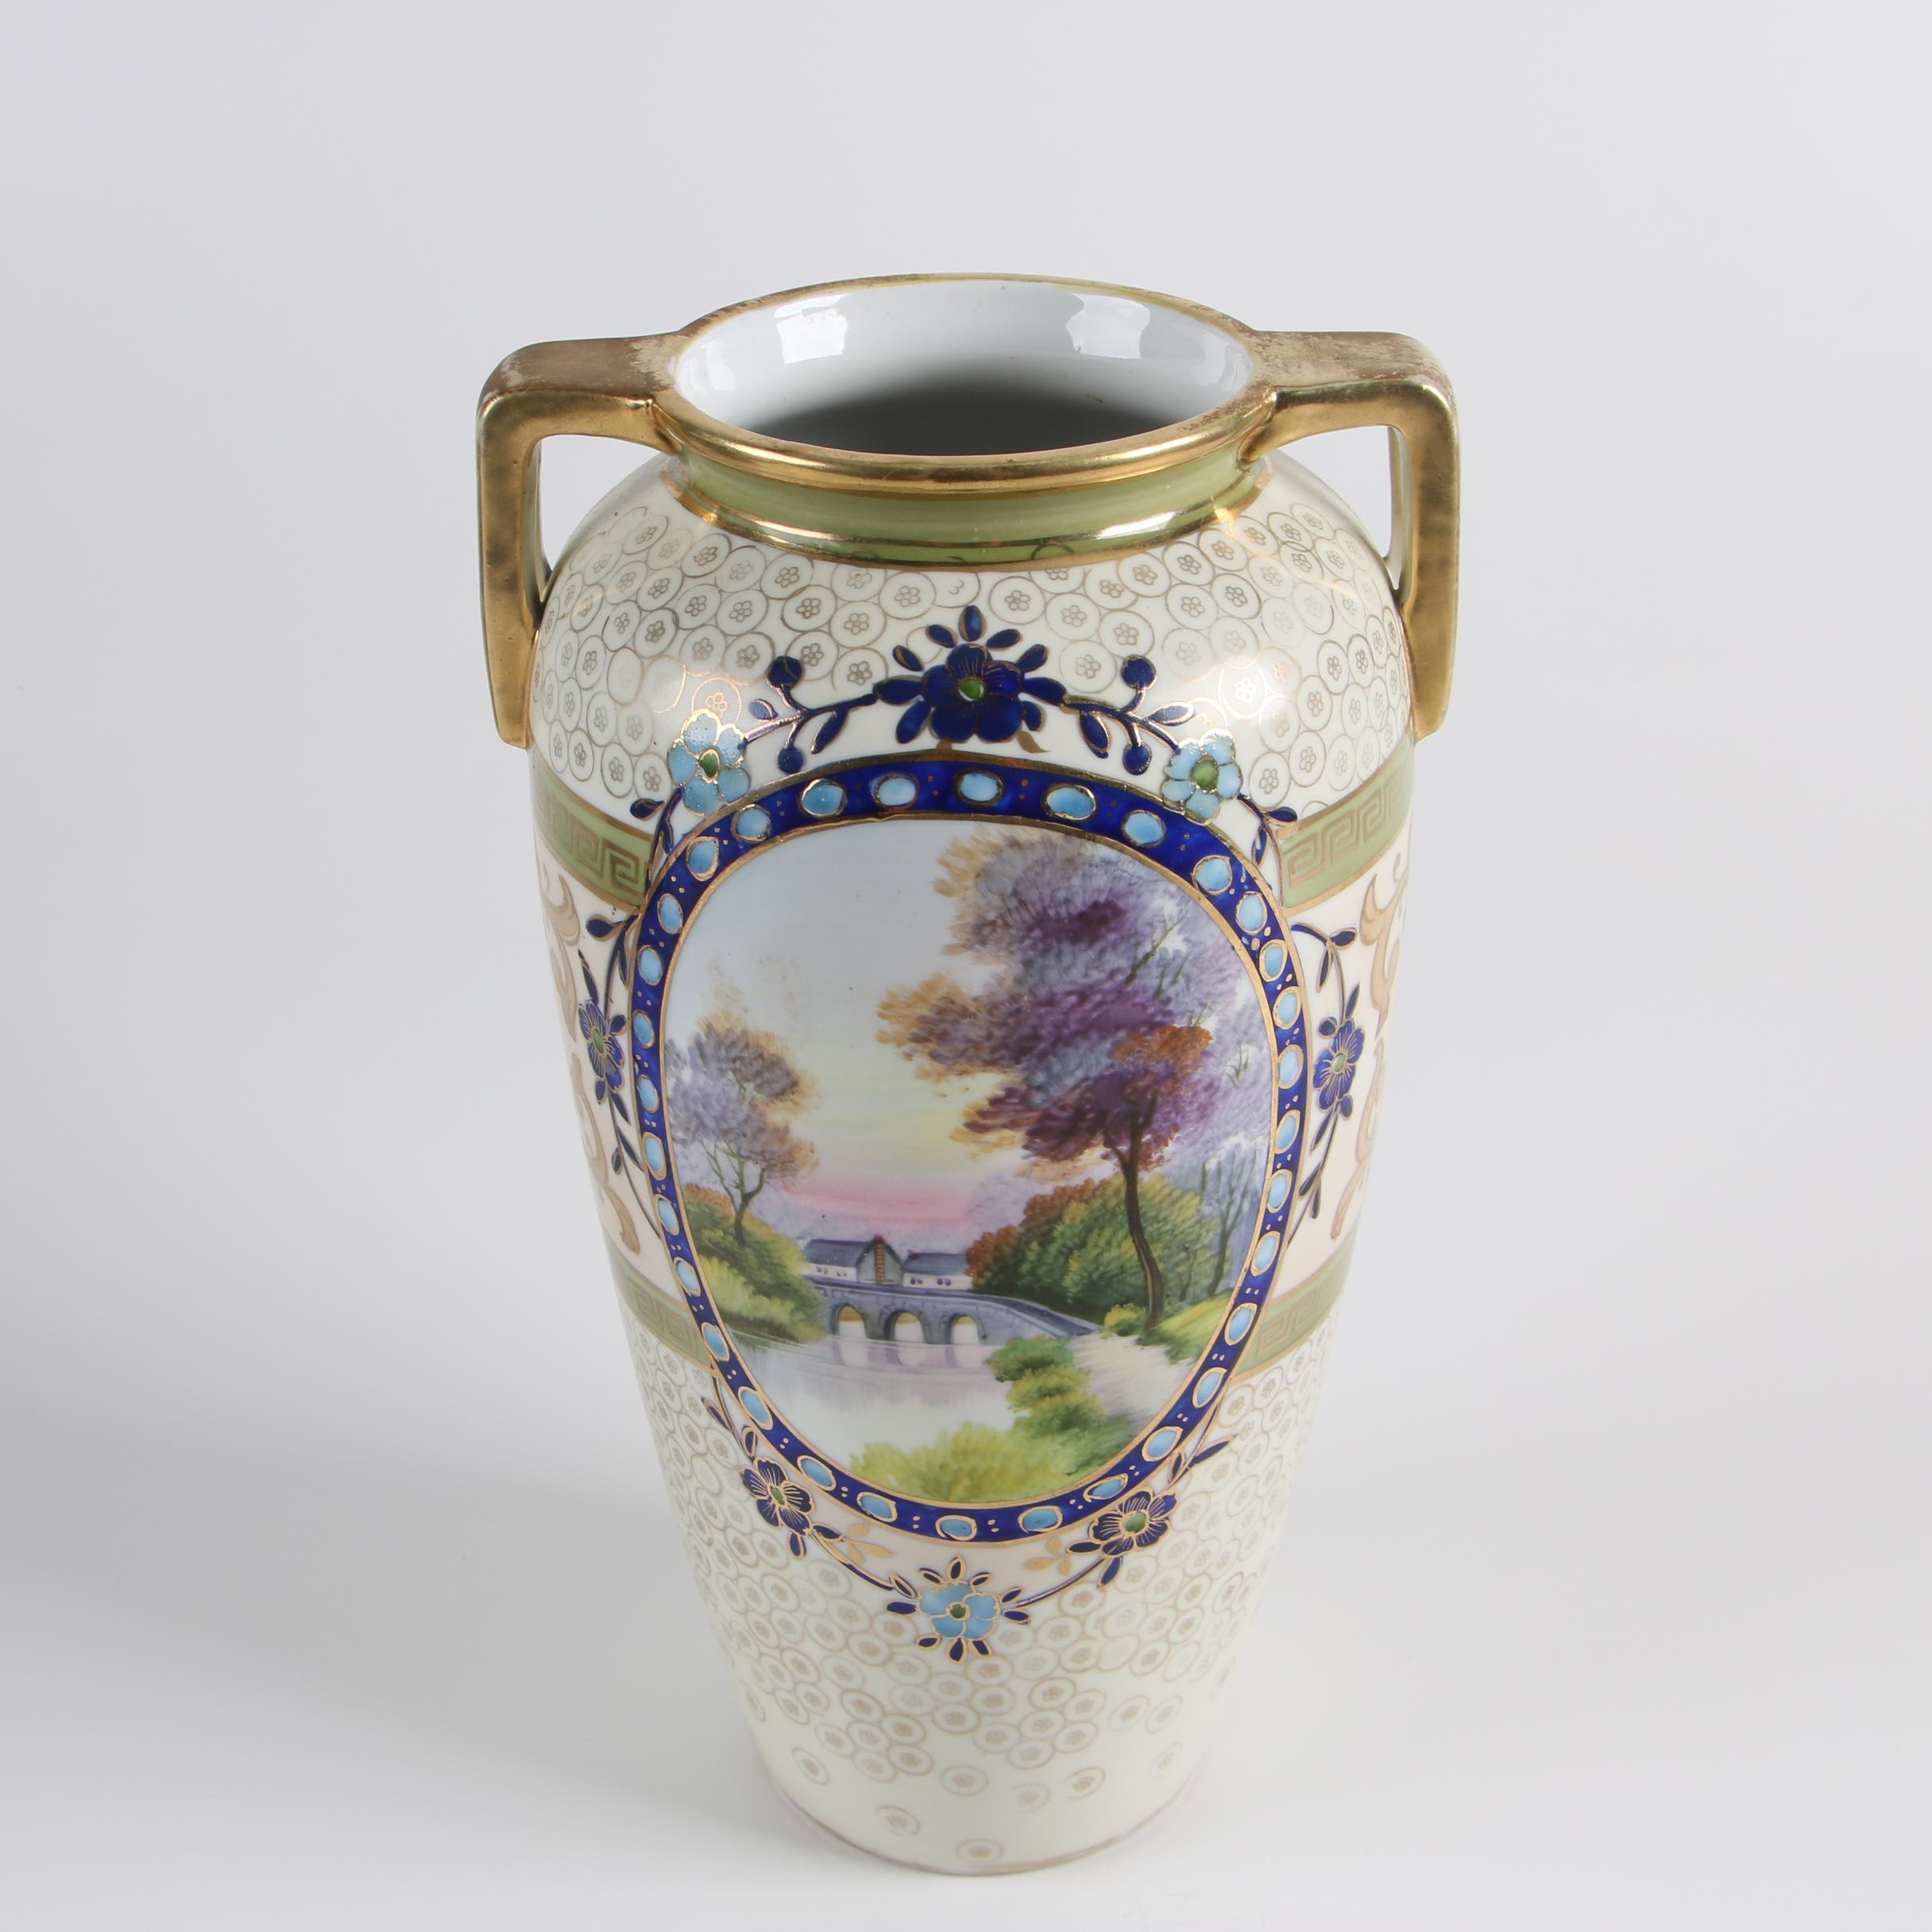 Art Deco Hand-Painted Noritake Scenic Porcelain Vase with Gilt Accents